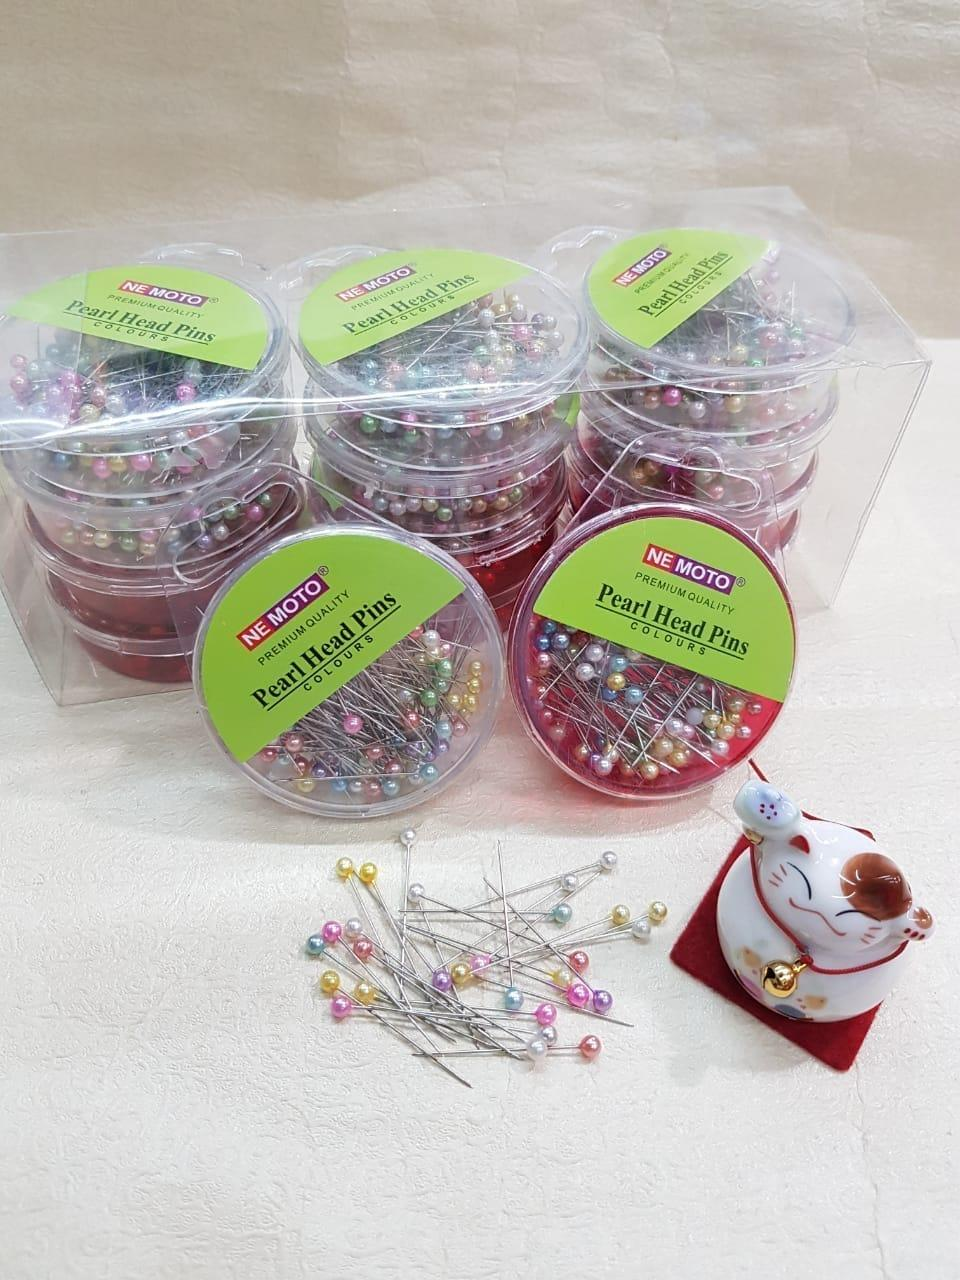 1 ( Satu ) Pack Nemoto Jarum Pentul / Peniti / Hijab Pearl Head Pins - 156 By Abelle Collections.